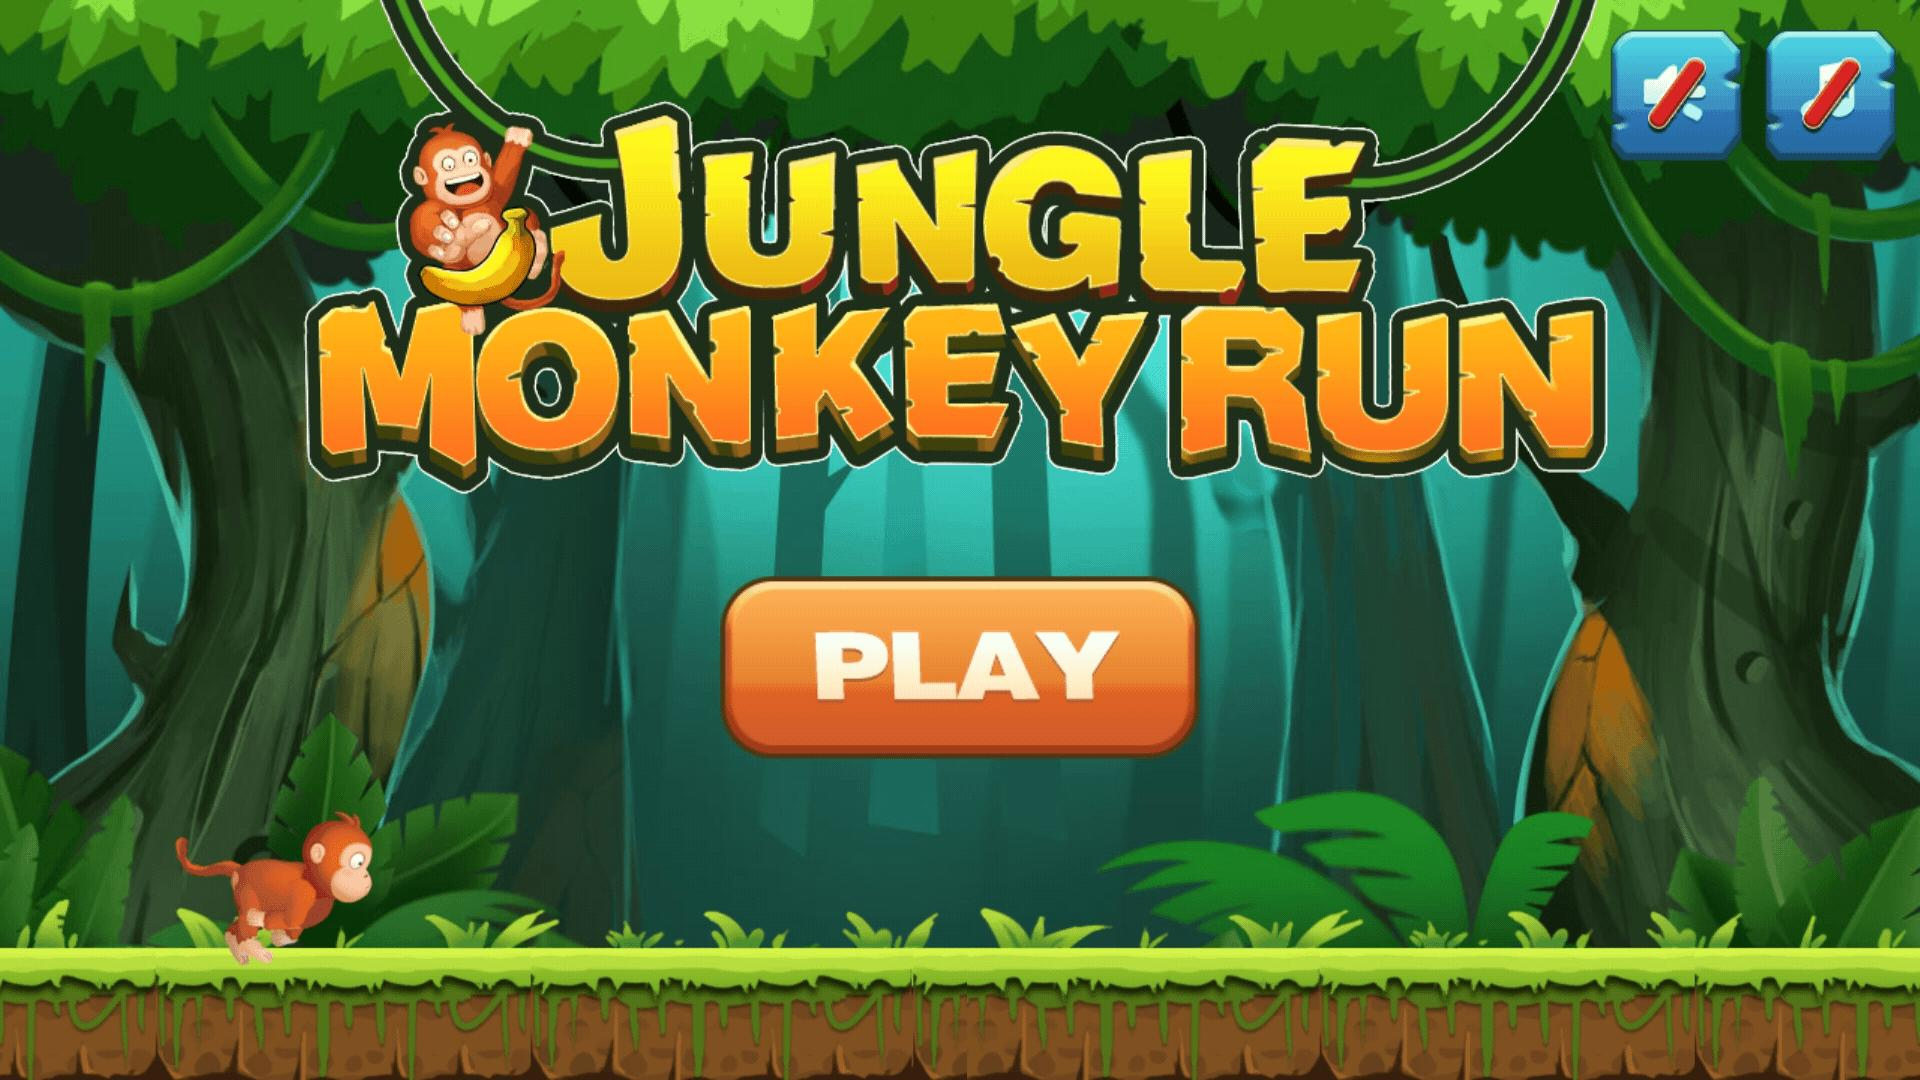 Jungle Monkey Run 1.7.7 Screenshot 11